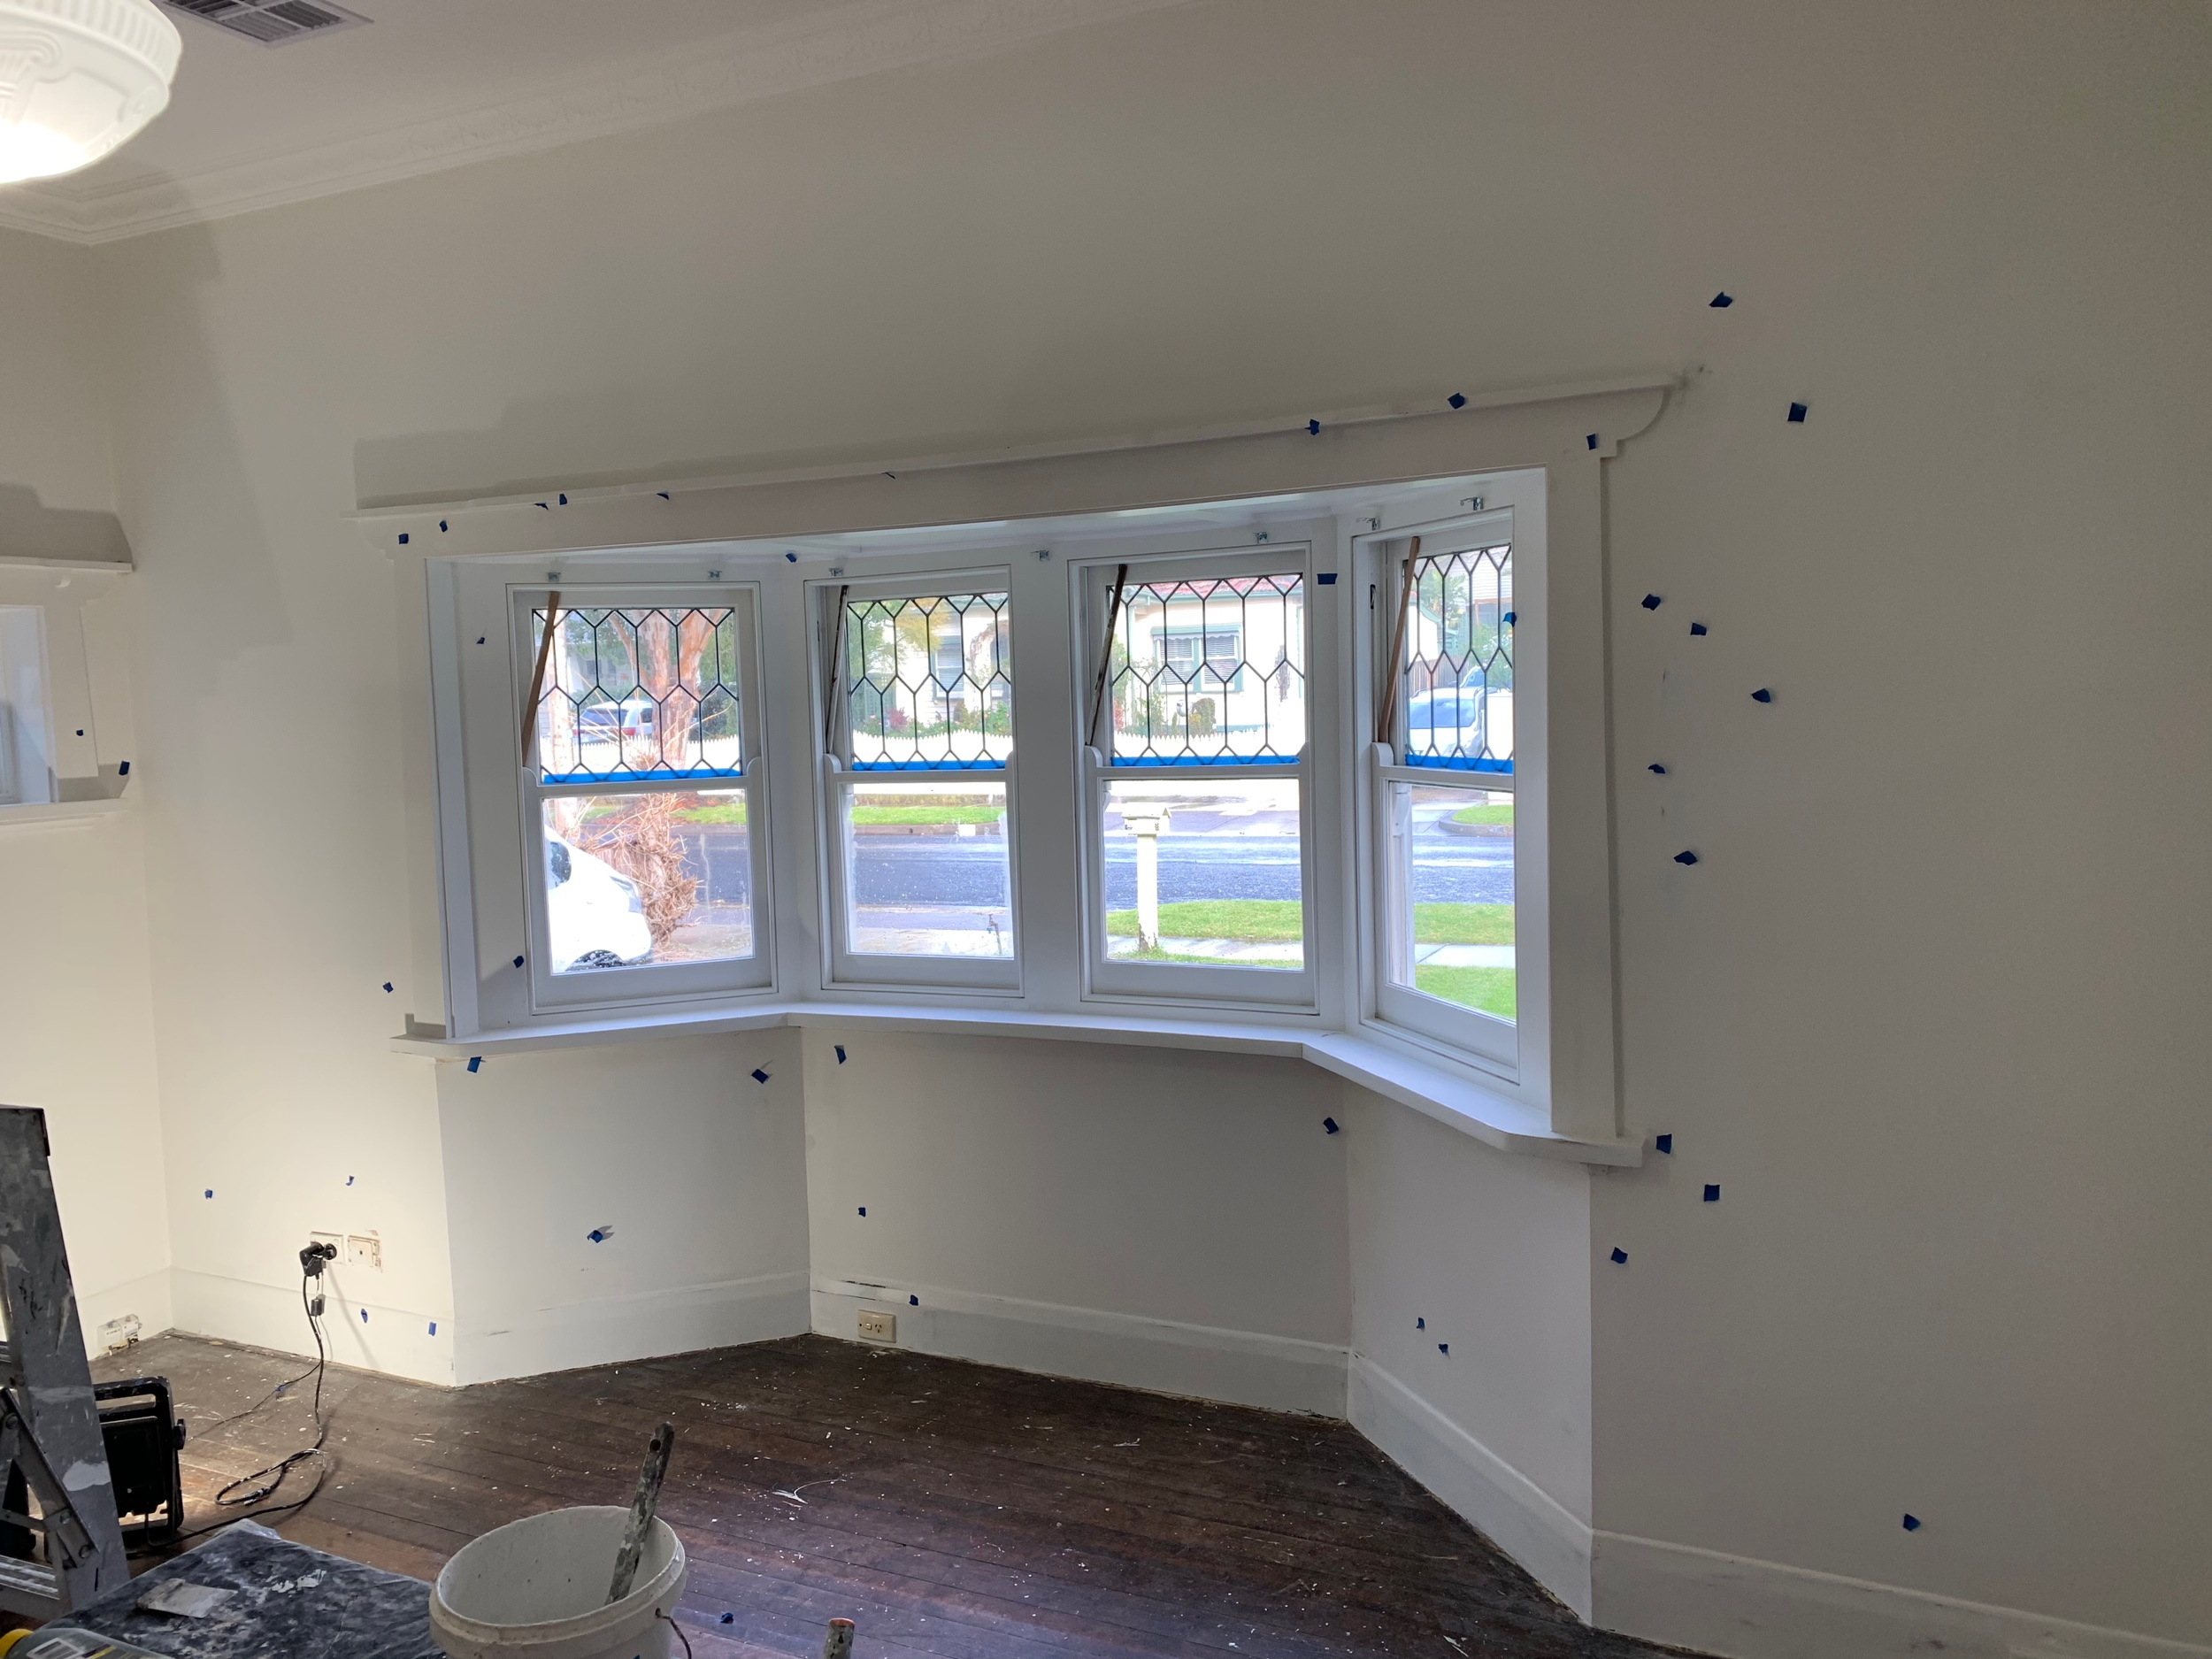 PREPARING all the walls and woodwork proper is critical for the best outcome possible. After filling walls and woodwork we mark the spots with tape so we dont miss any with the undercoat.